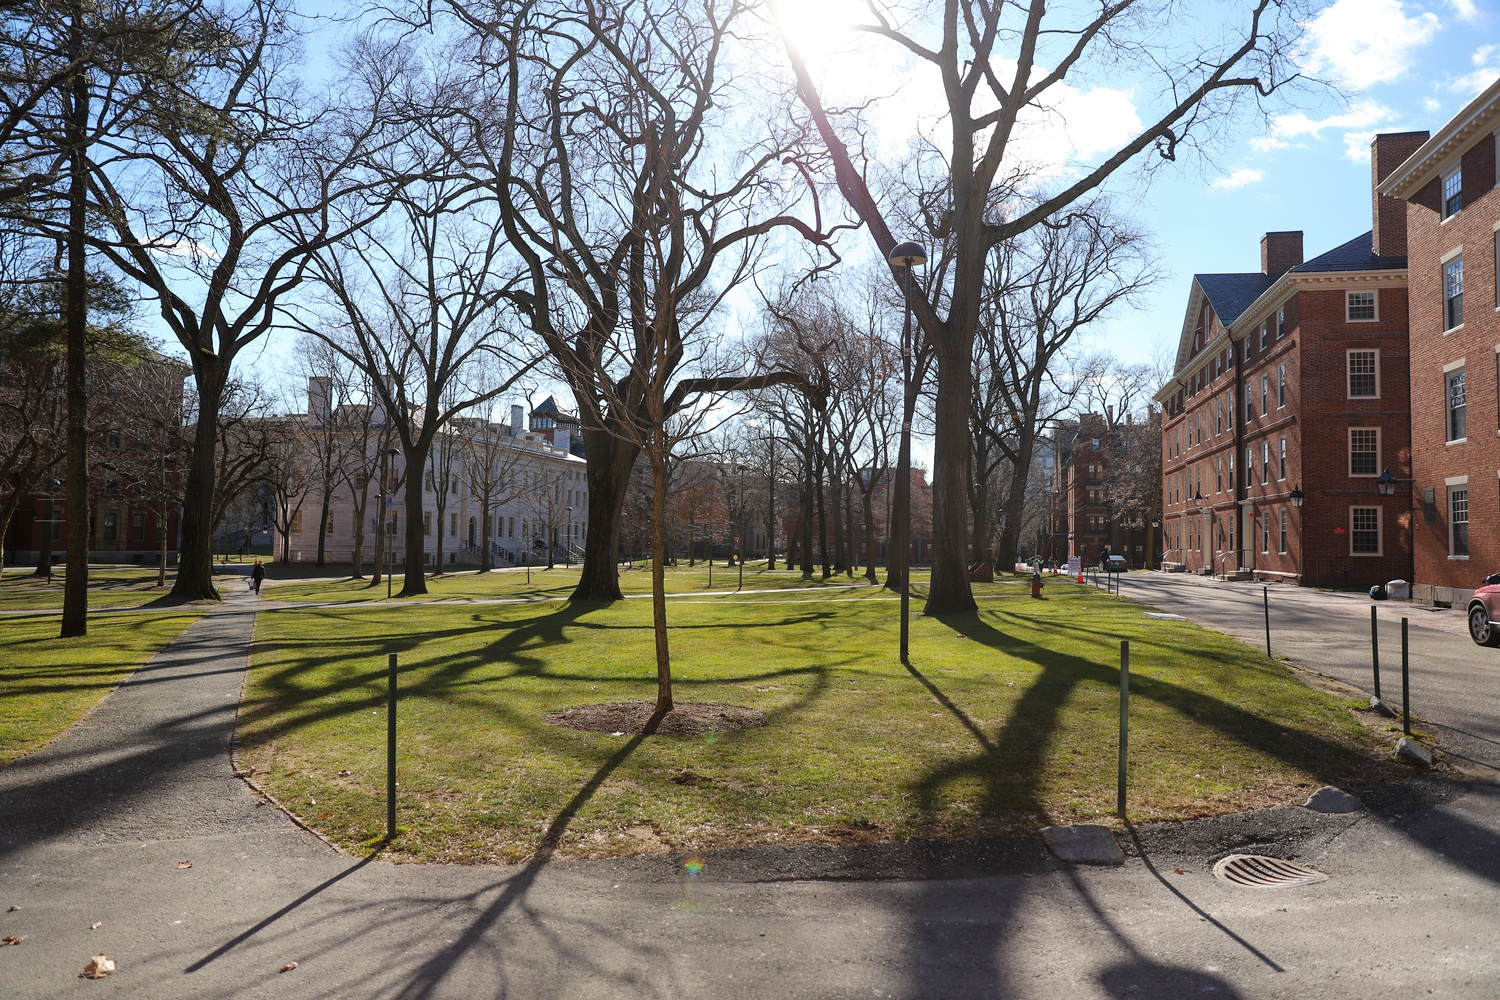 Harvard Yard sits largely empty early in the fully remote spring 2021 semester. A strong majority of surveyed faculty felt remote learning is not as valuable to students as in-person instruction.